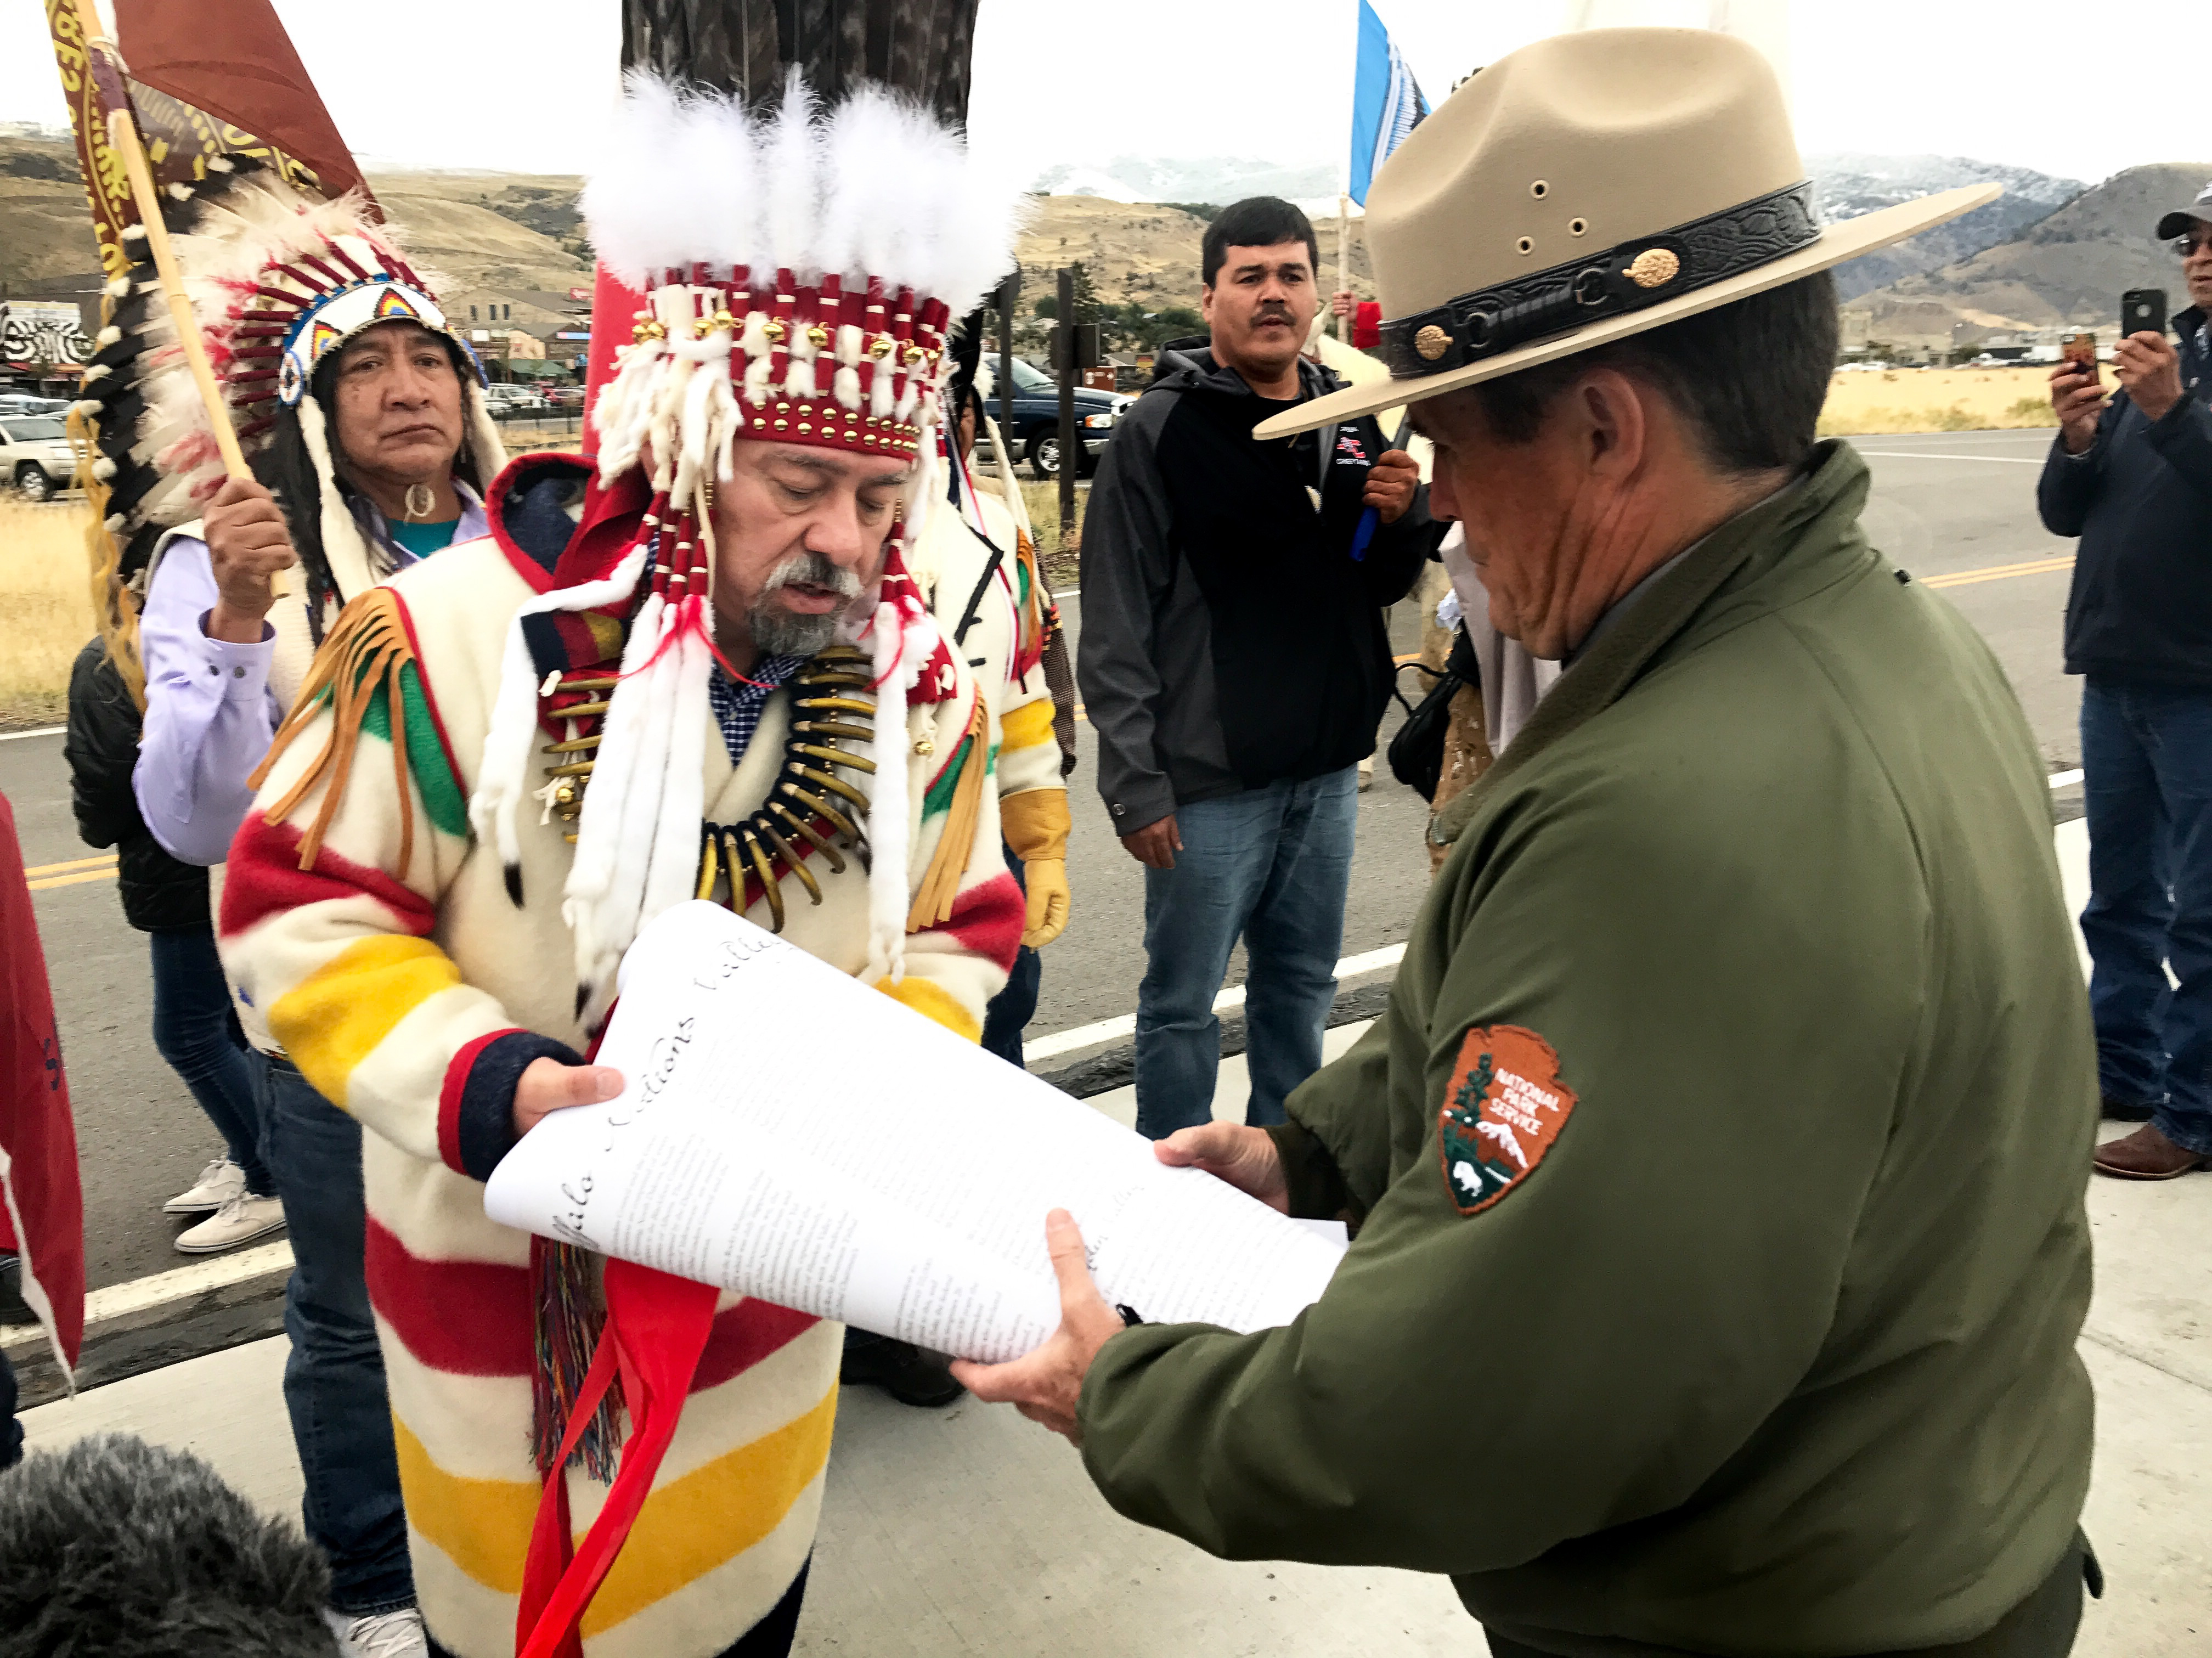 Chief Stanley Charles Grier of the Piikani Nation hands over a declaration to Yellowstone National Park deputy superintendent Pat Kenney.